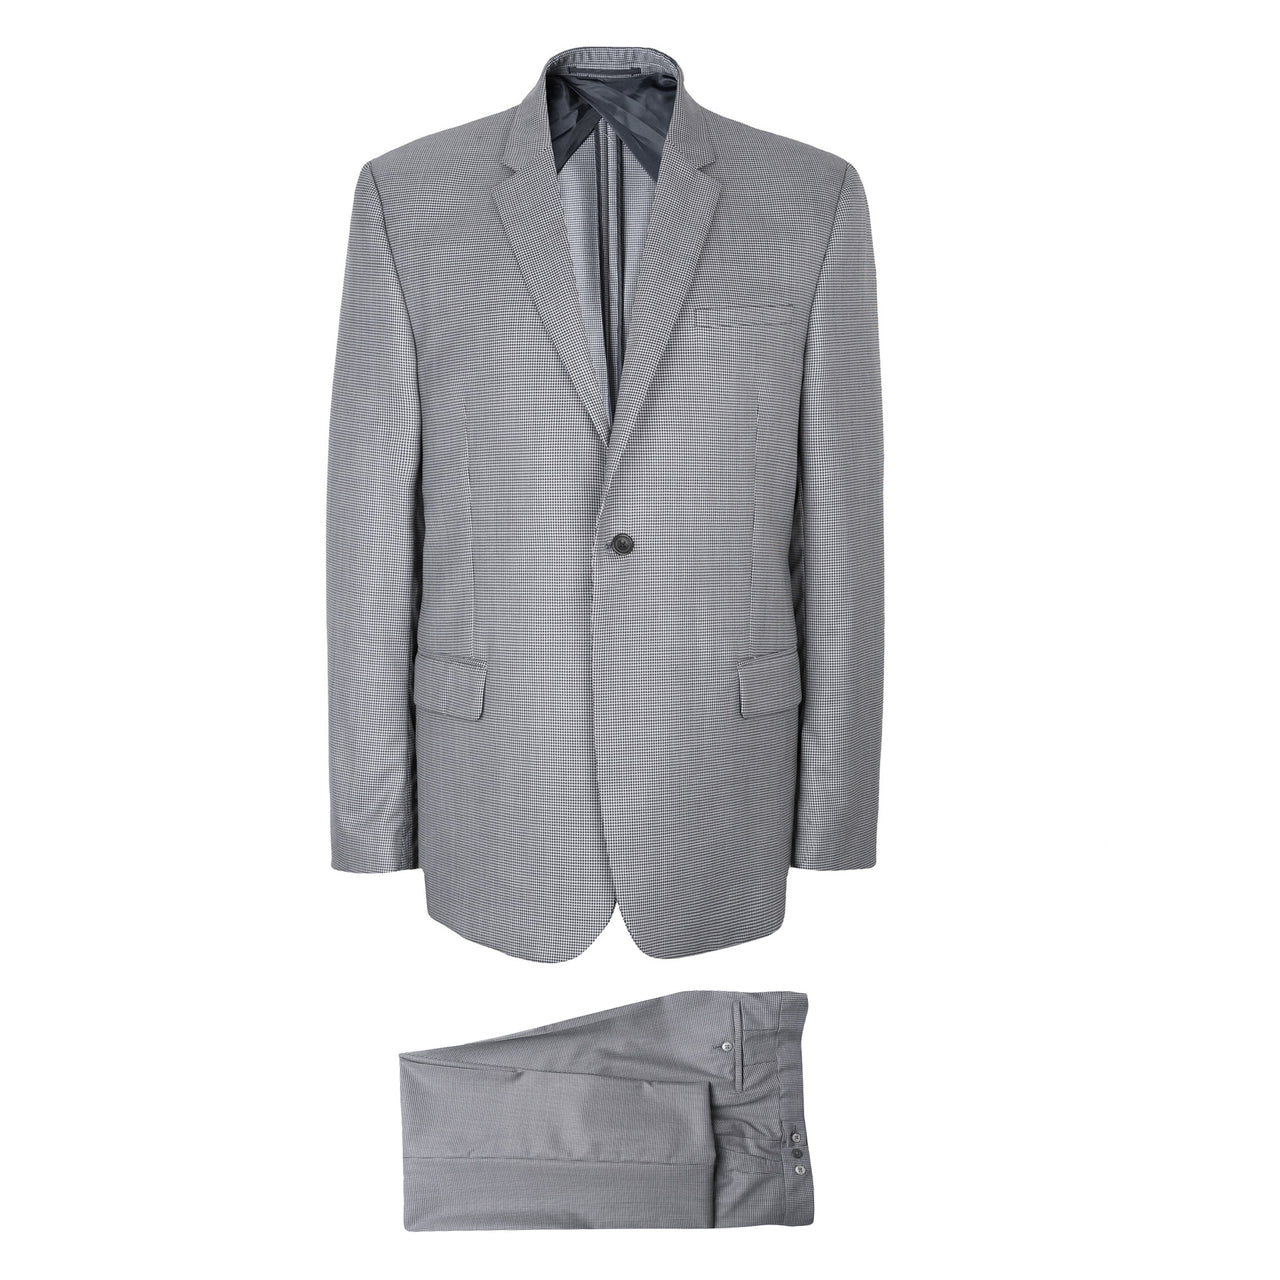 Luxury Grey Mini Houndstooth Suit Made In Italy